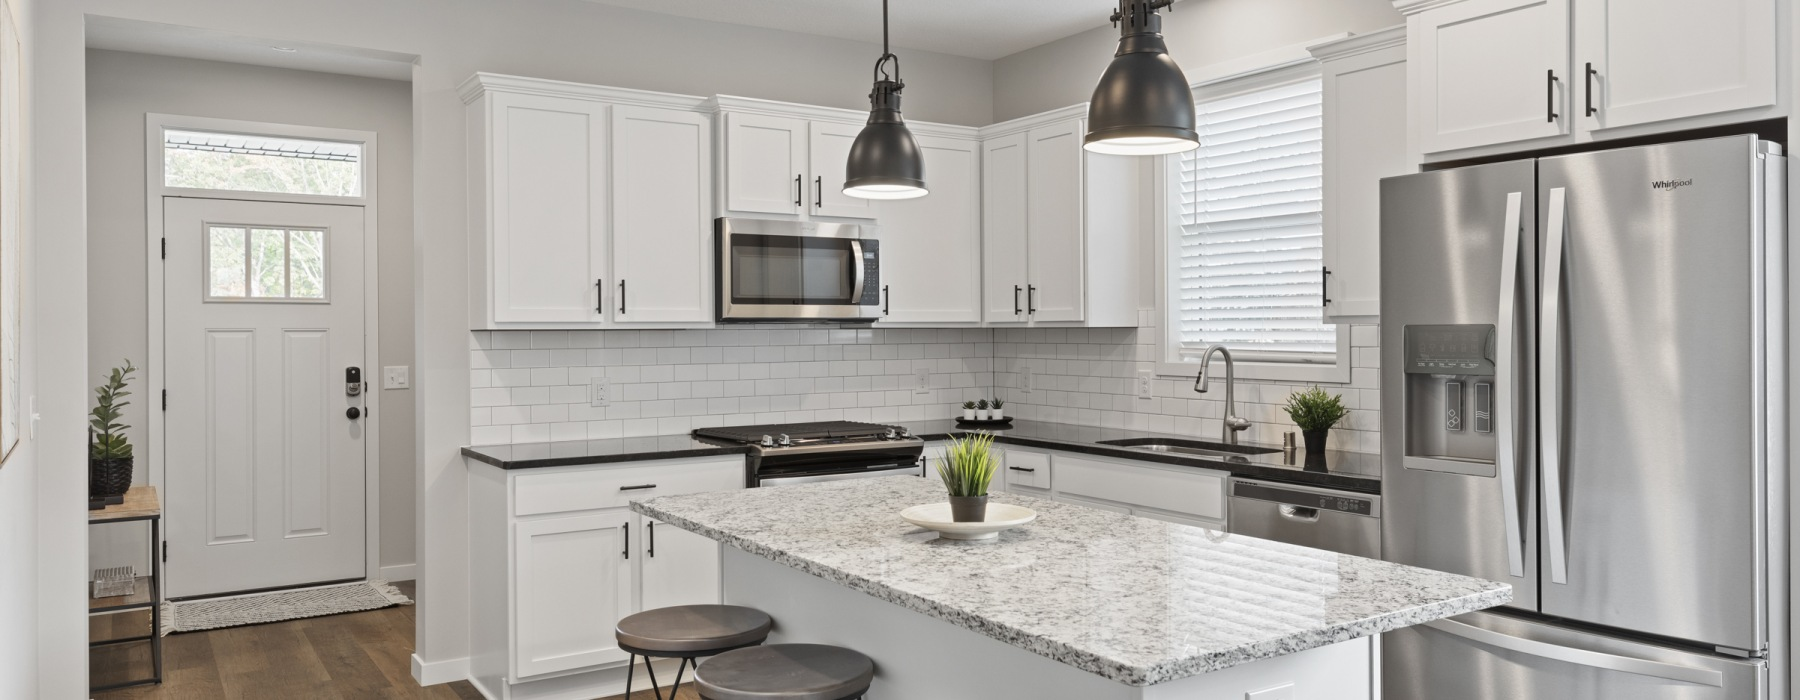 Modern Kitchens With Kitchen Islands At Beacon Ridge Single Family Rentals In Plymouth, MN